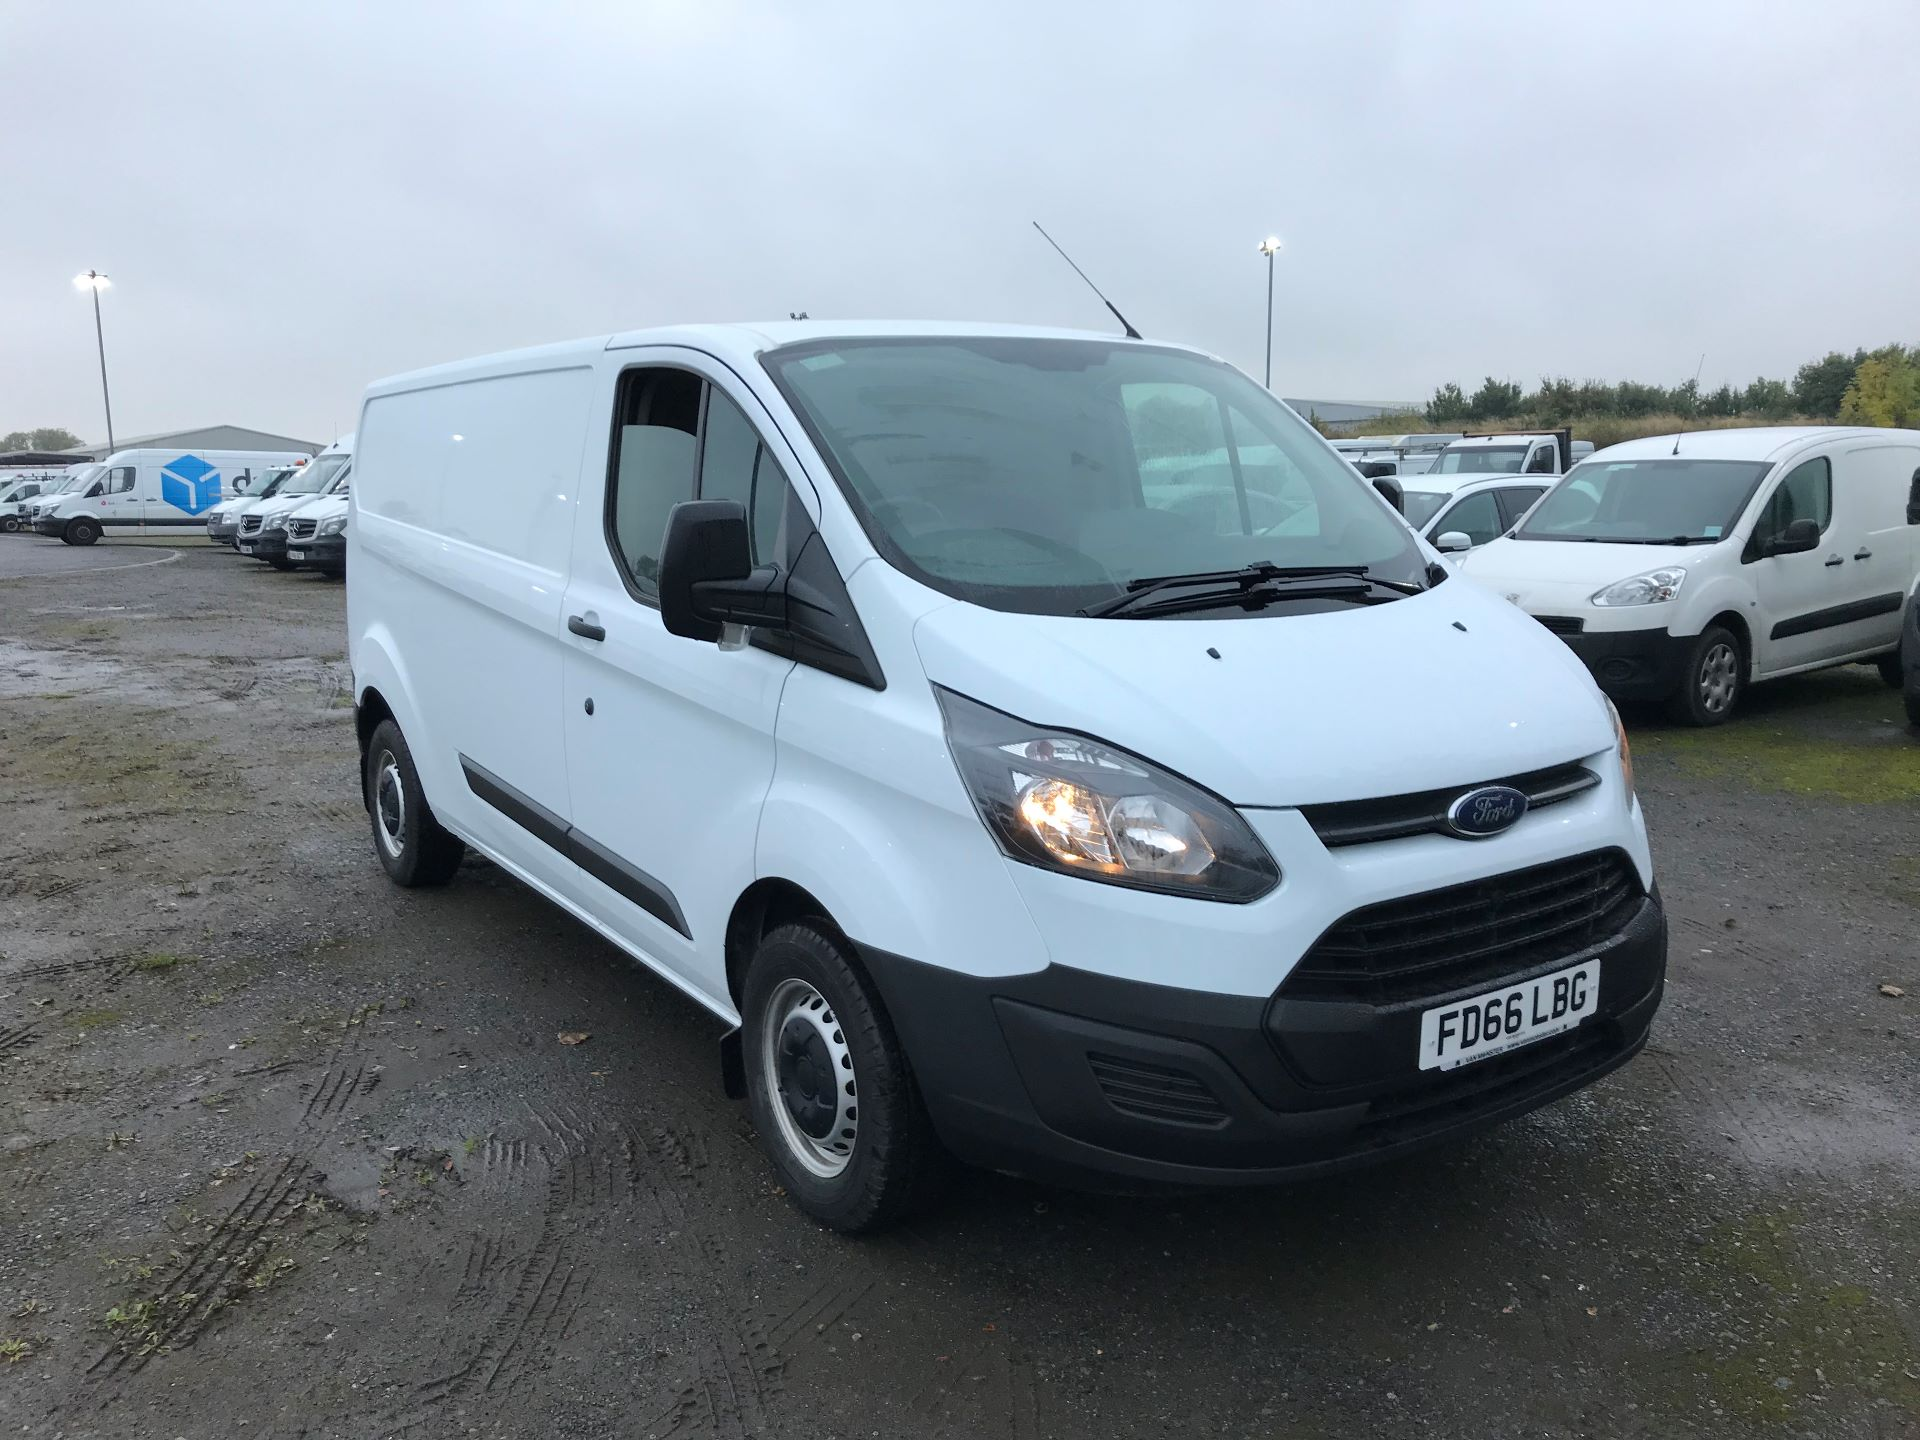 2016 Ford Transit Custom 2.0 Tdci 105Ps Low Roof Van (FD66LBG)